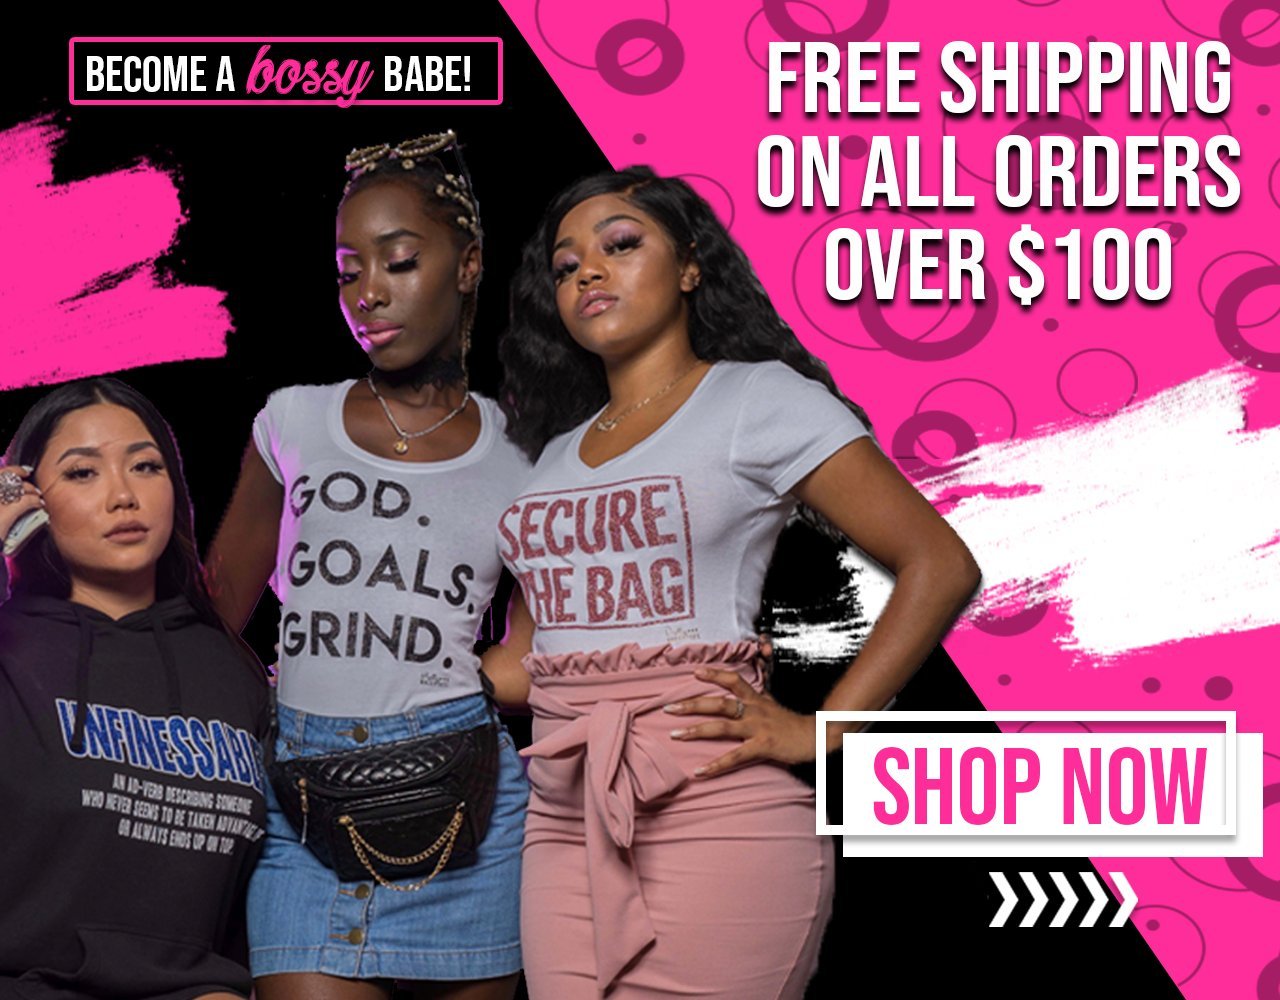 Free Shipping On All Orders. No Minimum.